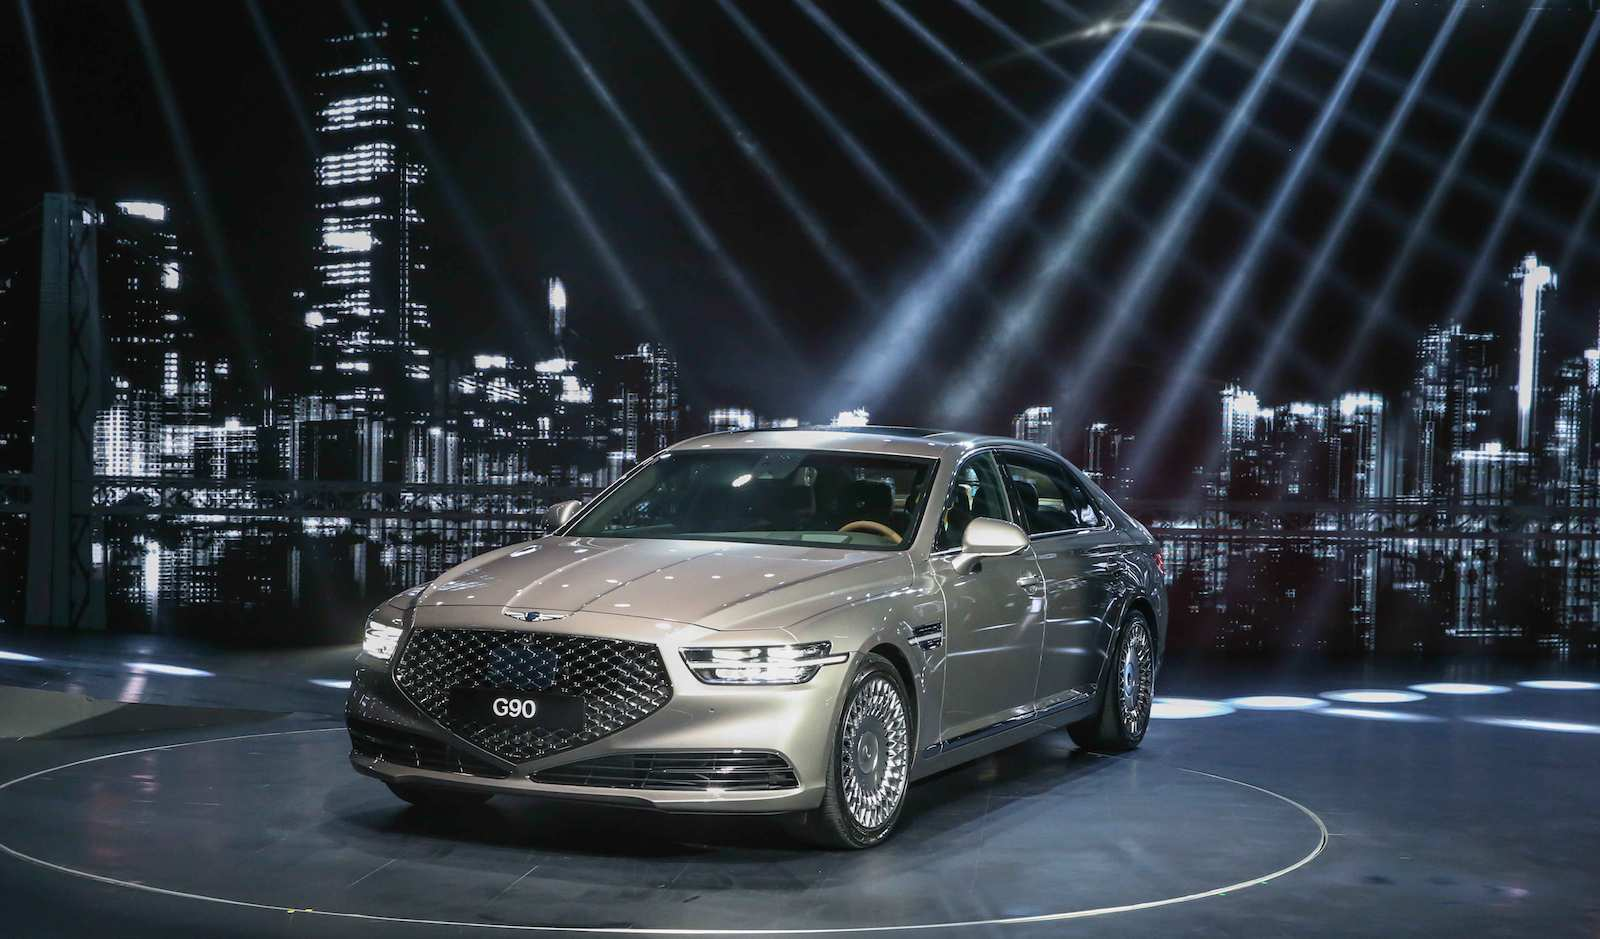 99 Gallery of 2019 Genesis G90 Exterior for 2019 Genesis G90